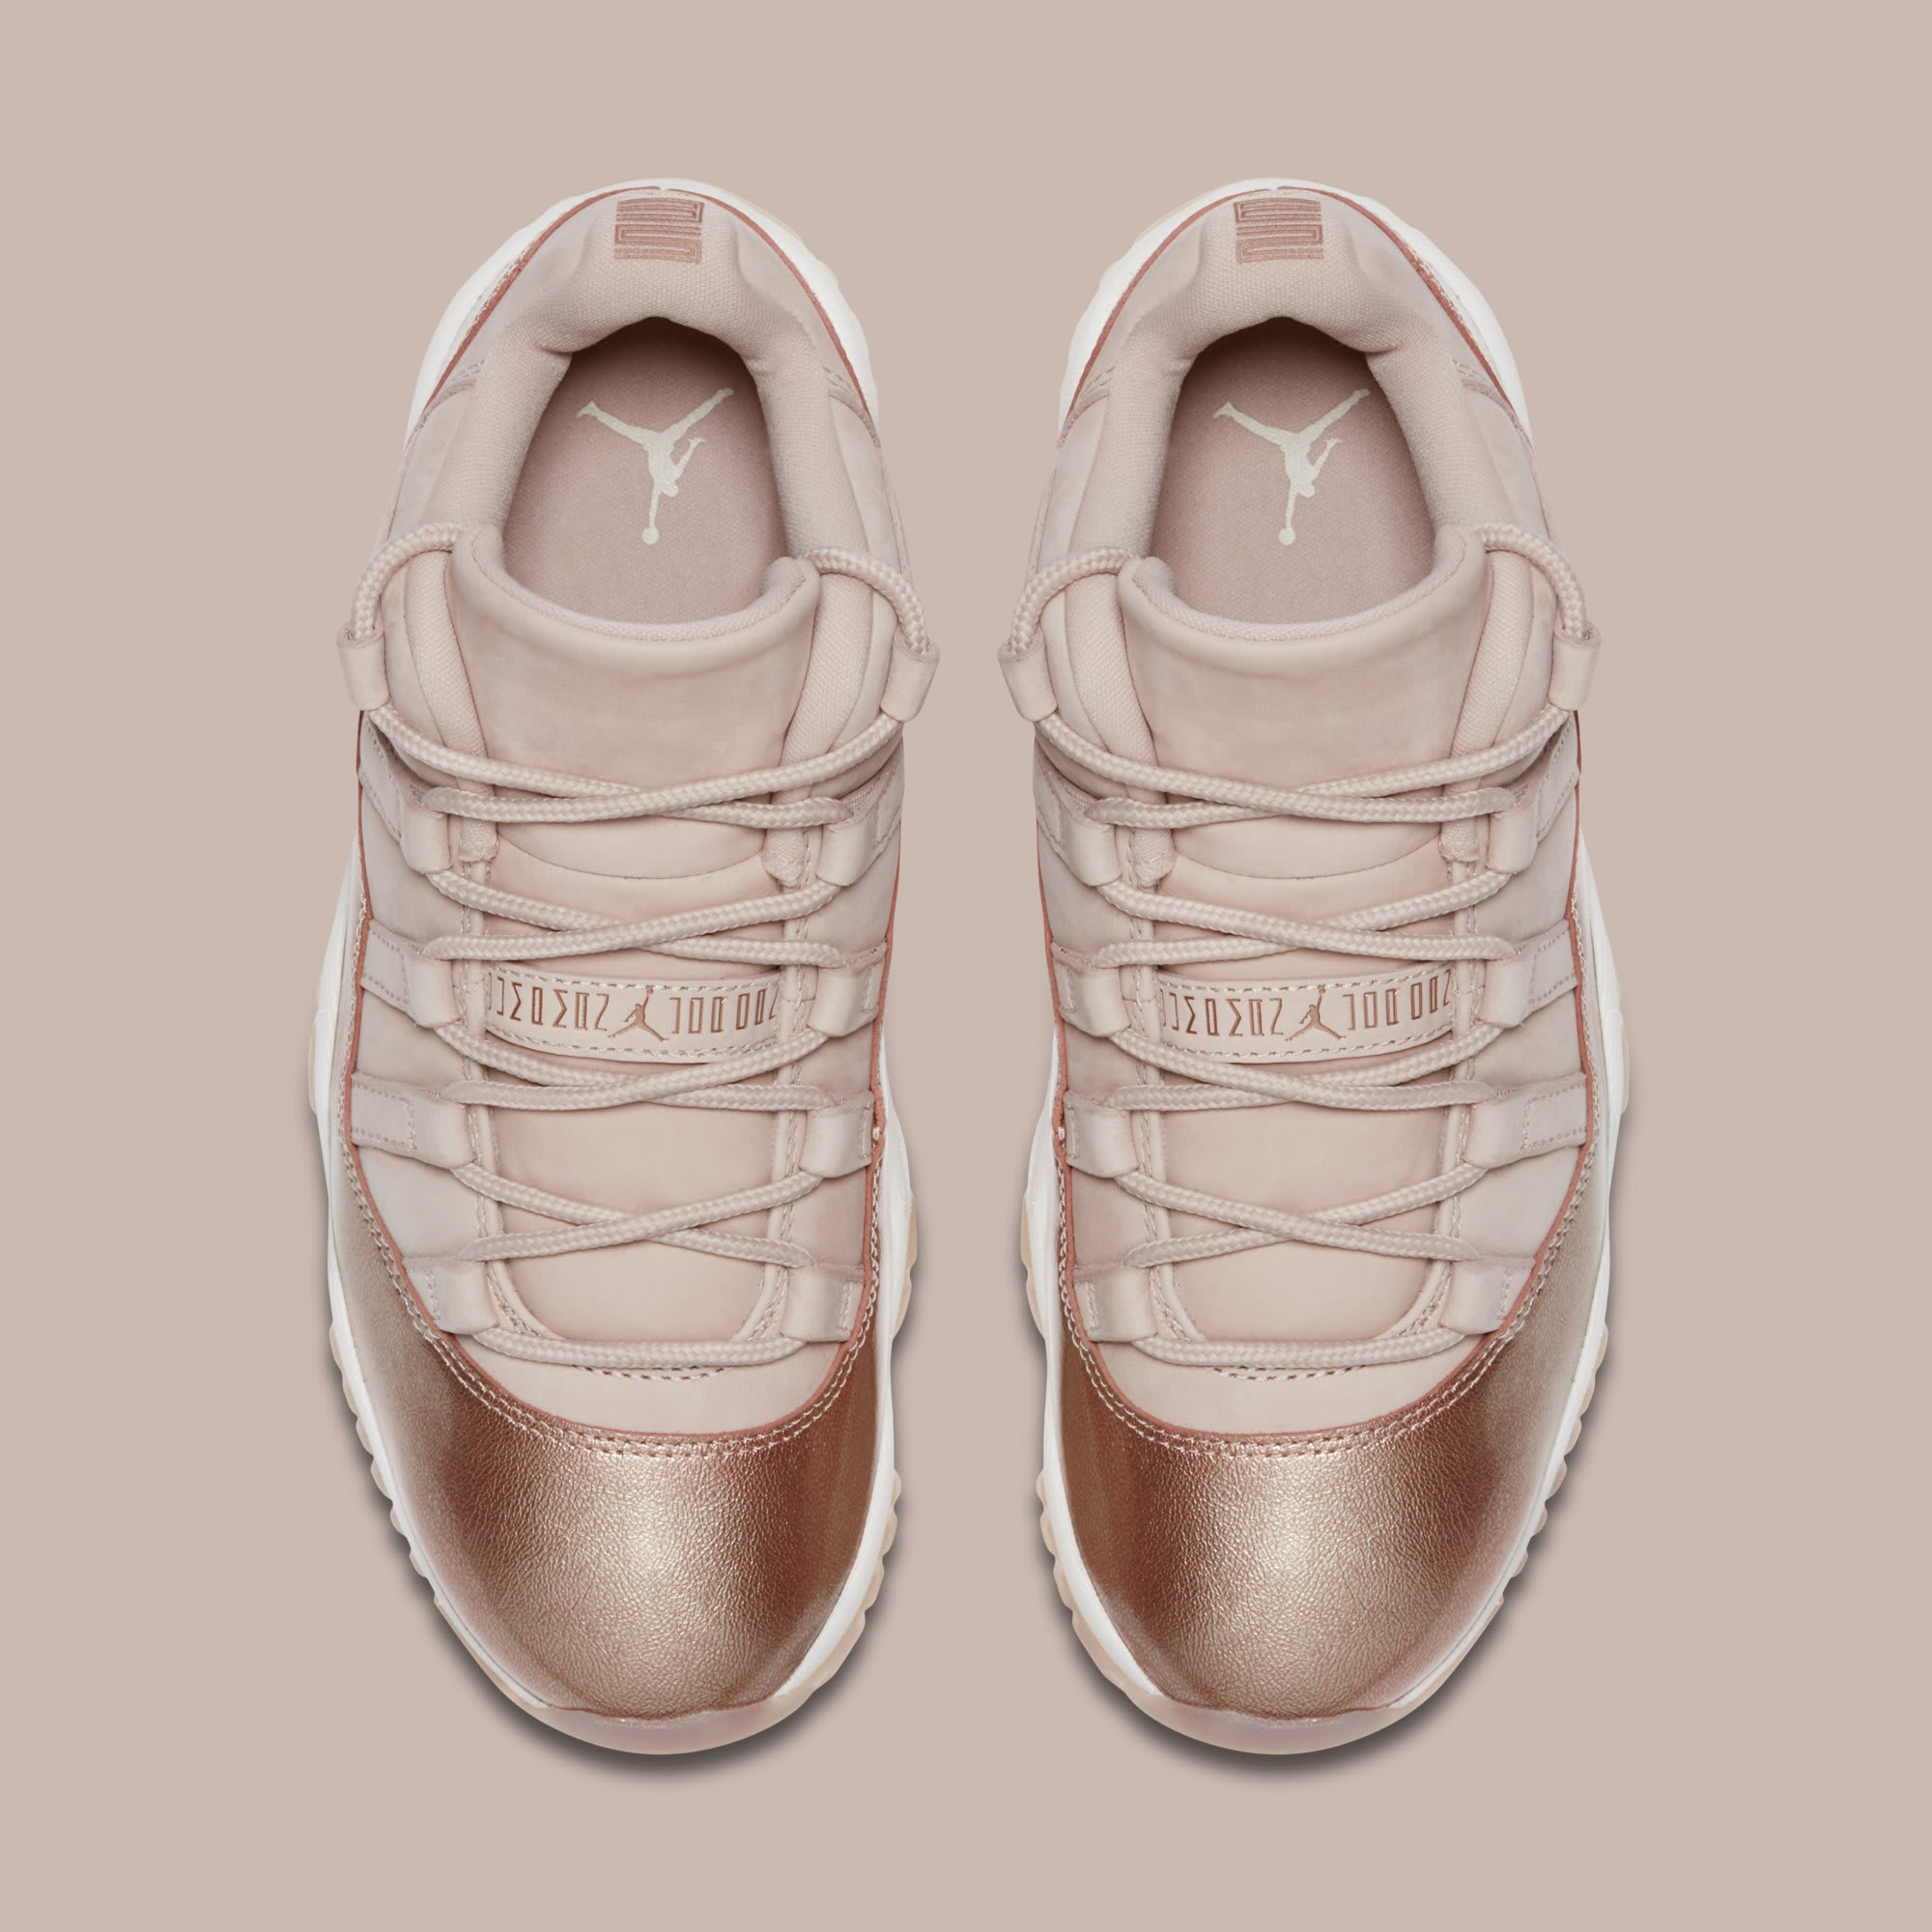 info for 3eefd be1a1 Air Jordan 11 Retro Low GG